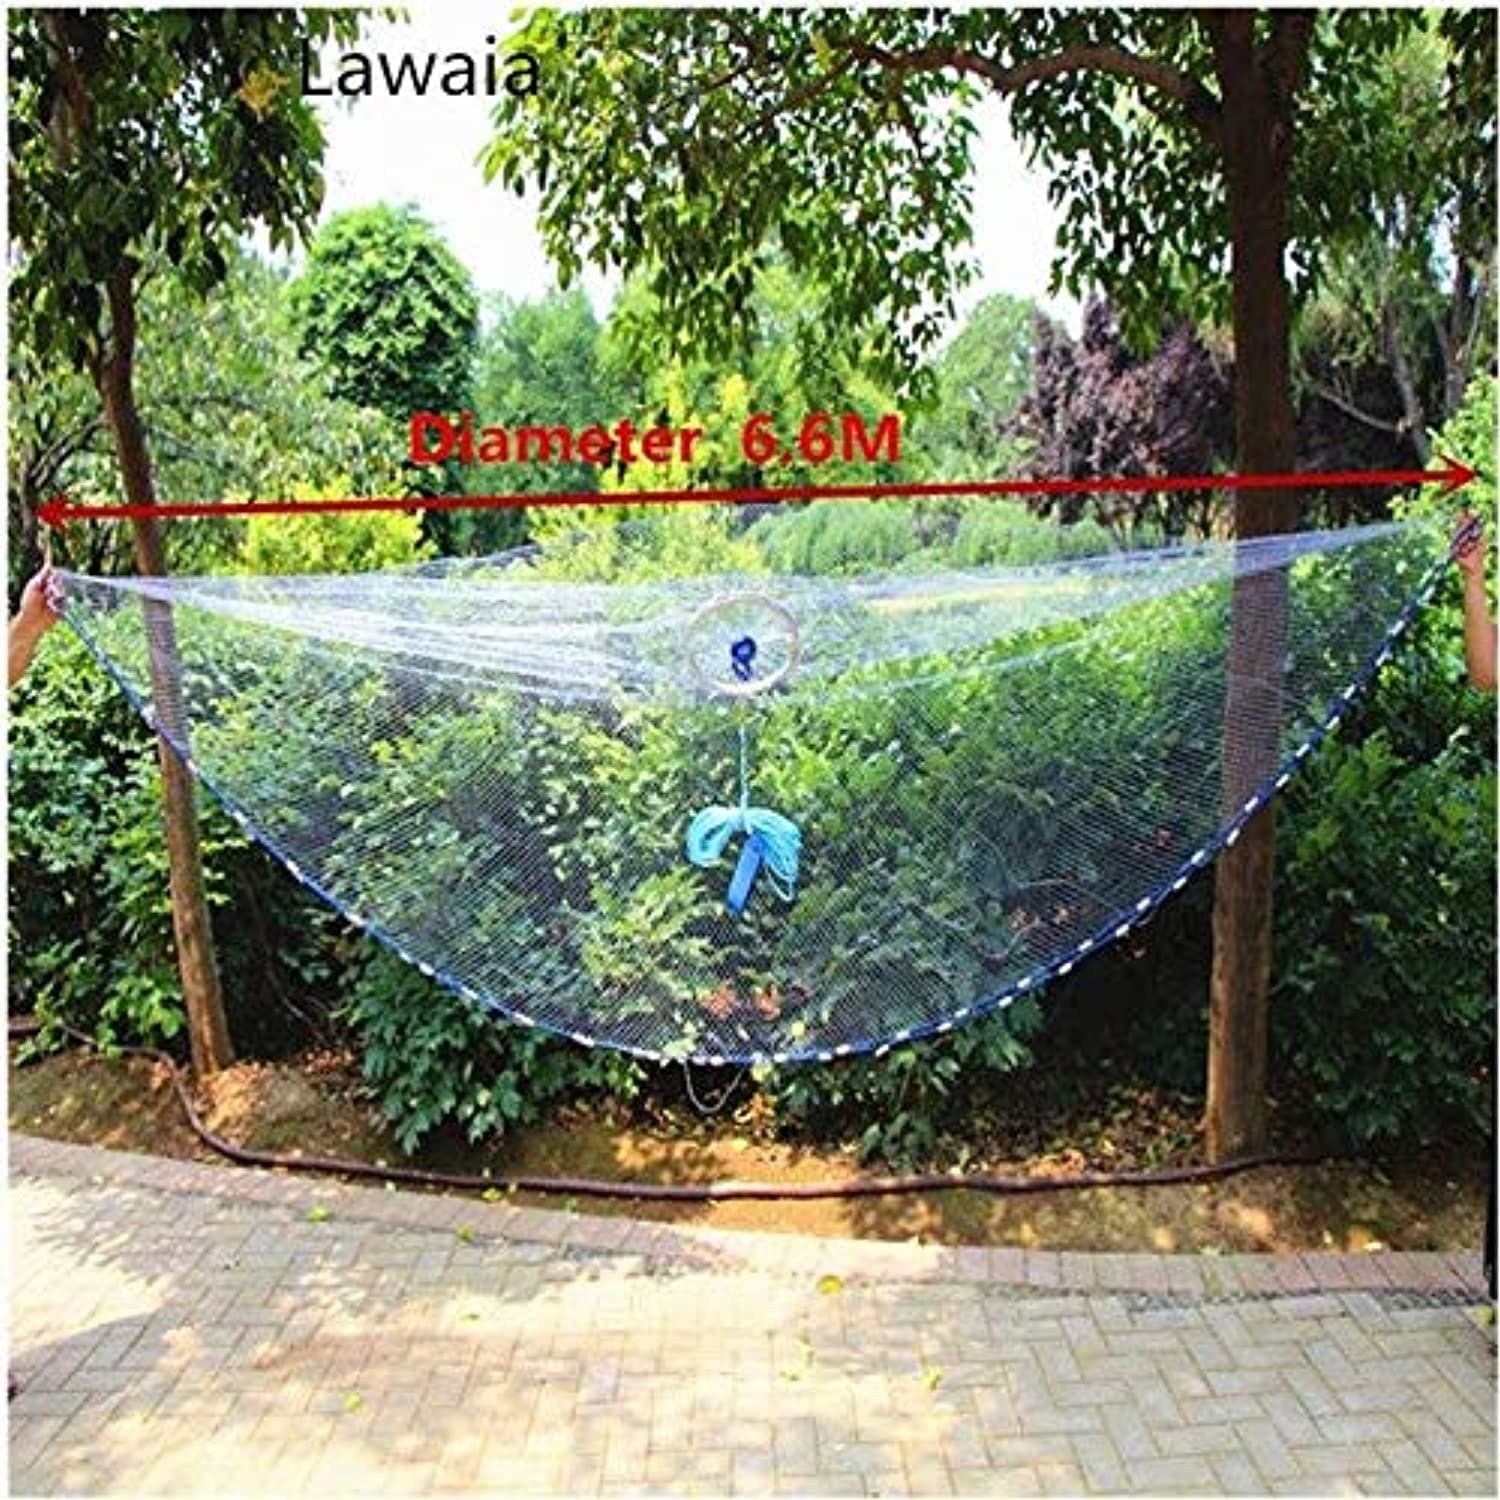 Lawaia cast Net with Ring American Style Cast Net Throwing Tool Fishingnet with Lead Pendant Fishing Network Diameter 2.4m7.2m   Diameter 660cm